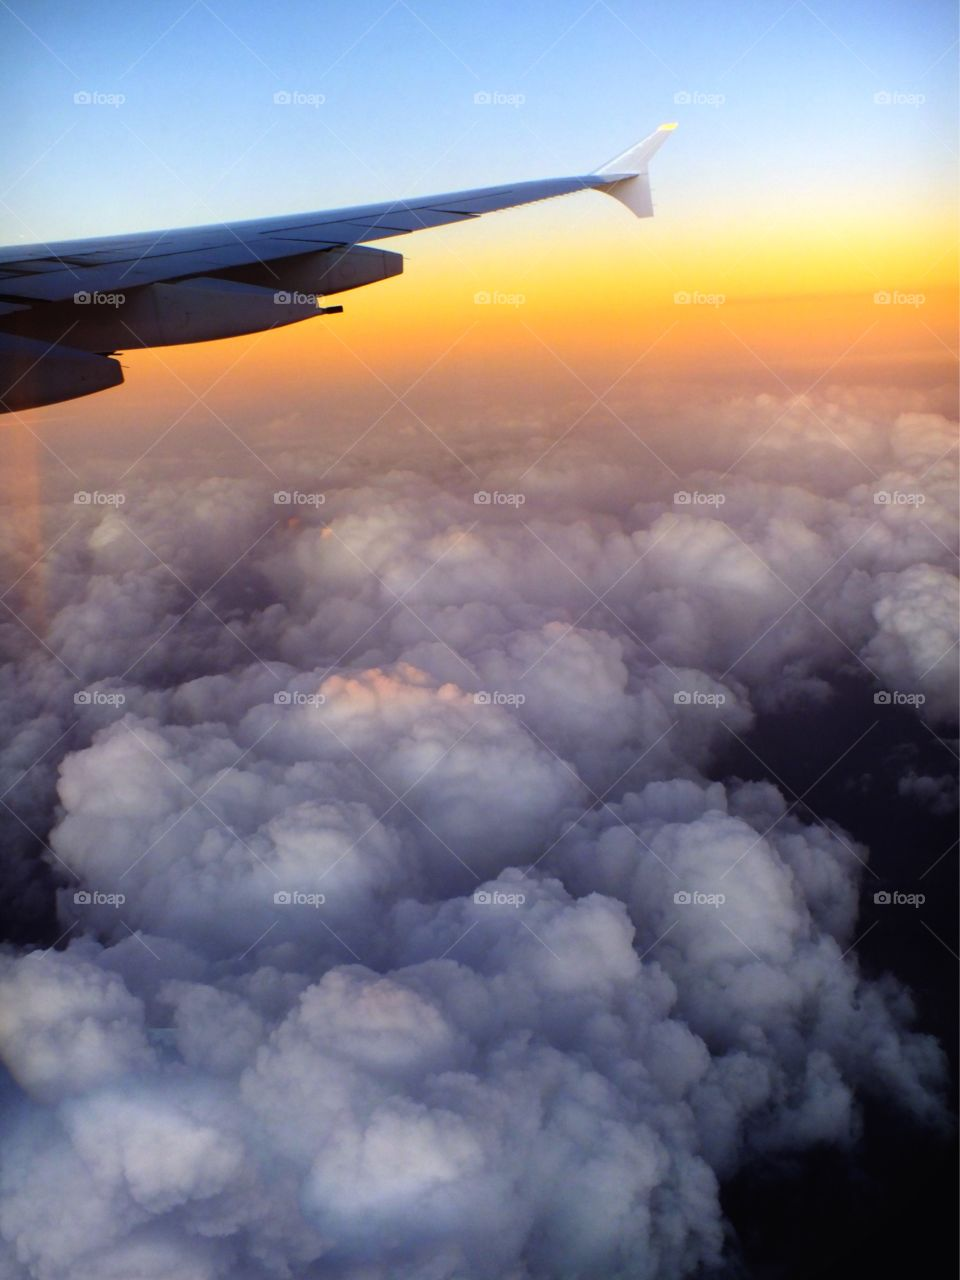 Views out the airplane window